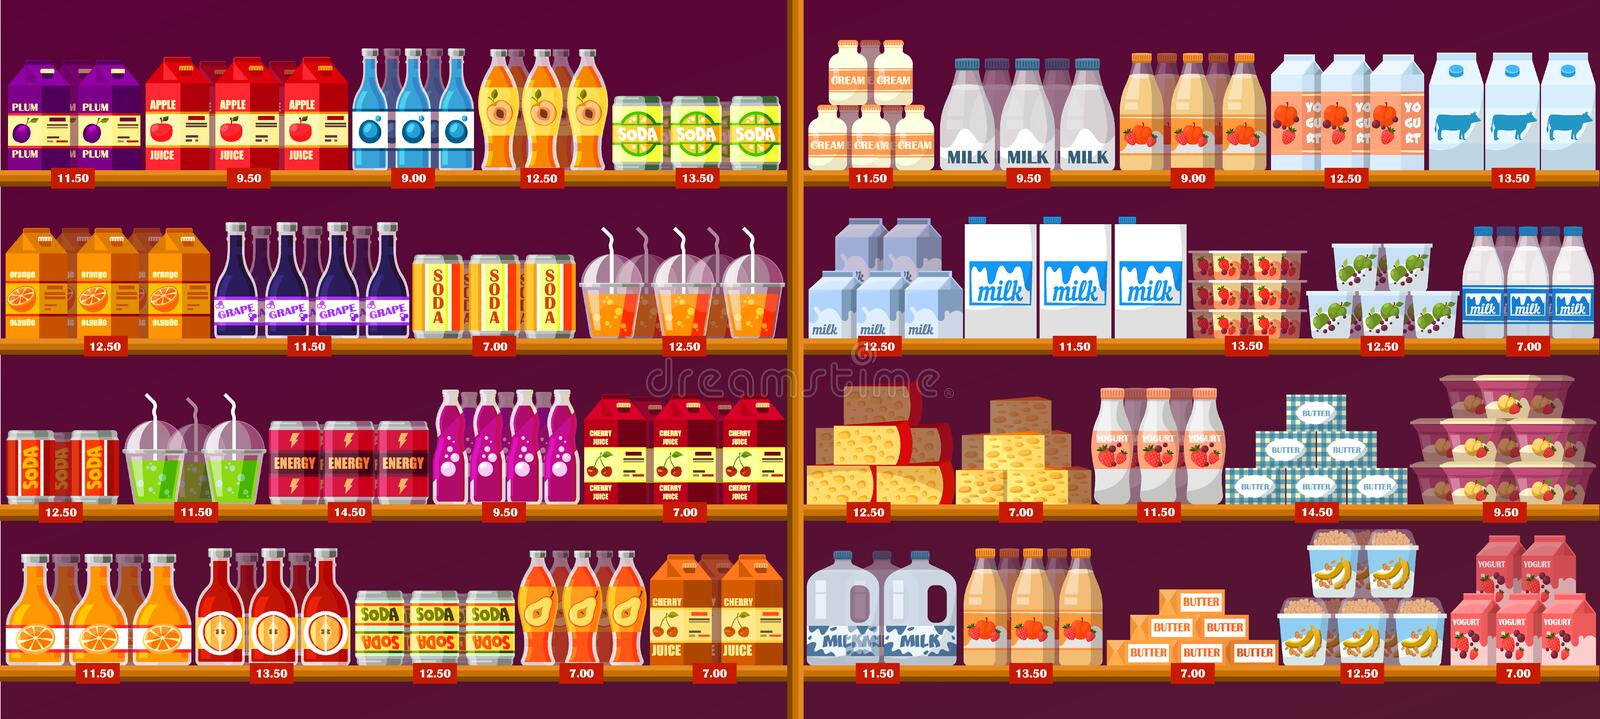 Juice drinks and dairy at shop shelves or showcase royalty free illustration